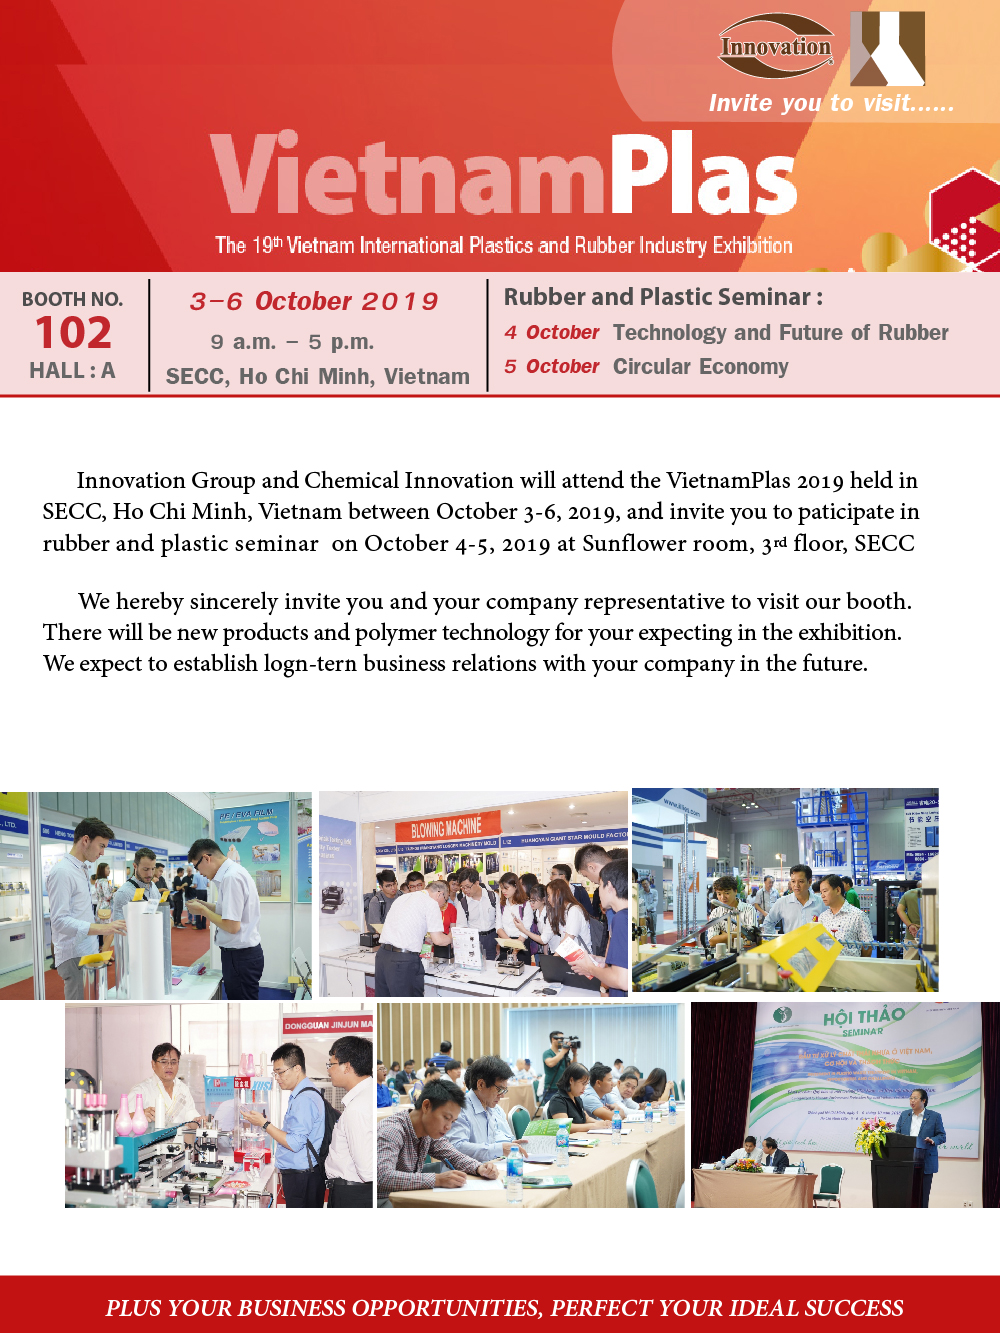 Innovation Group and Chemical Innovation will attend the VietnamPlas 2019